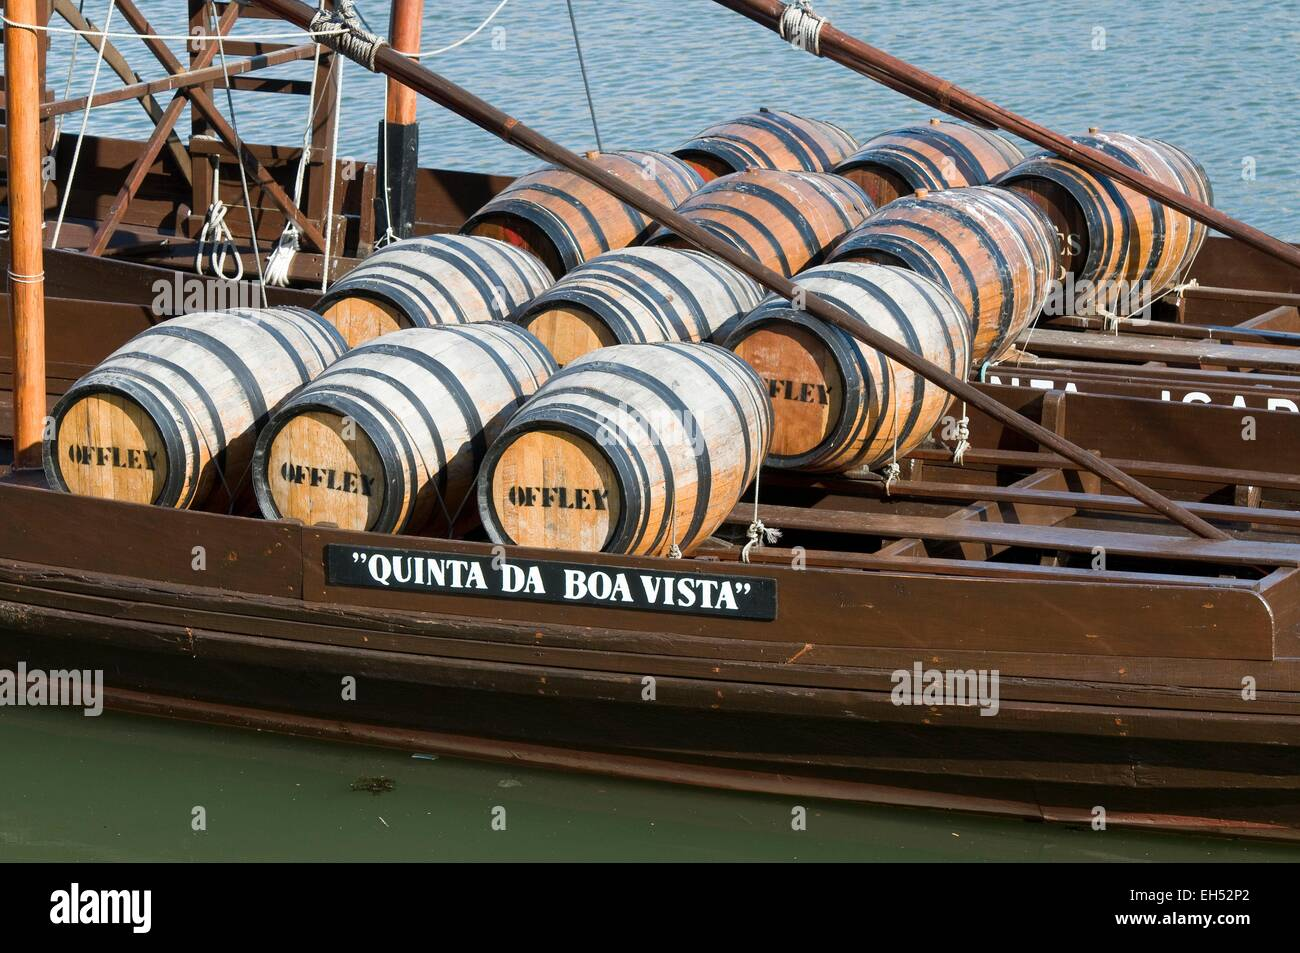 Portugal, North Region, Porto, historical center listed as World Heritage by UNESCO, barrels Puerto Barco Rabelo - Stock Image